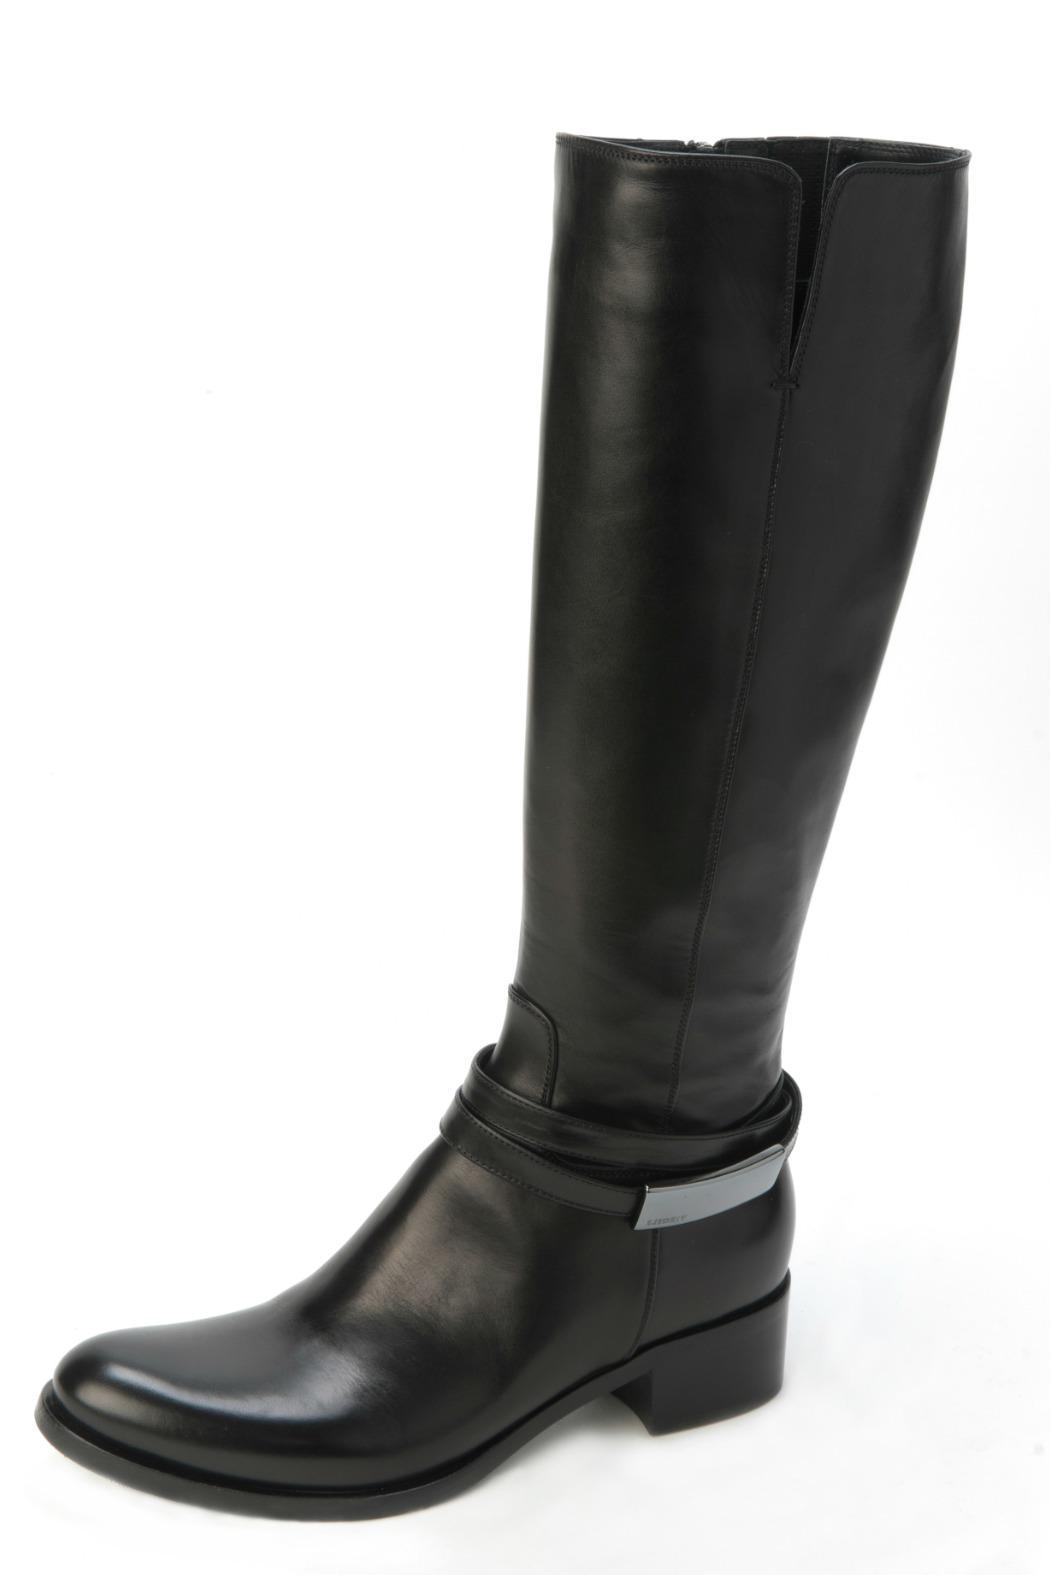 vittorio virgili leather boot from vancouver by